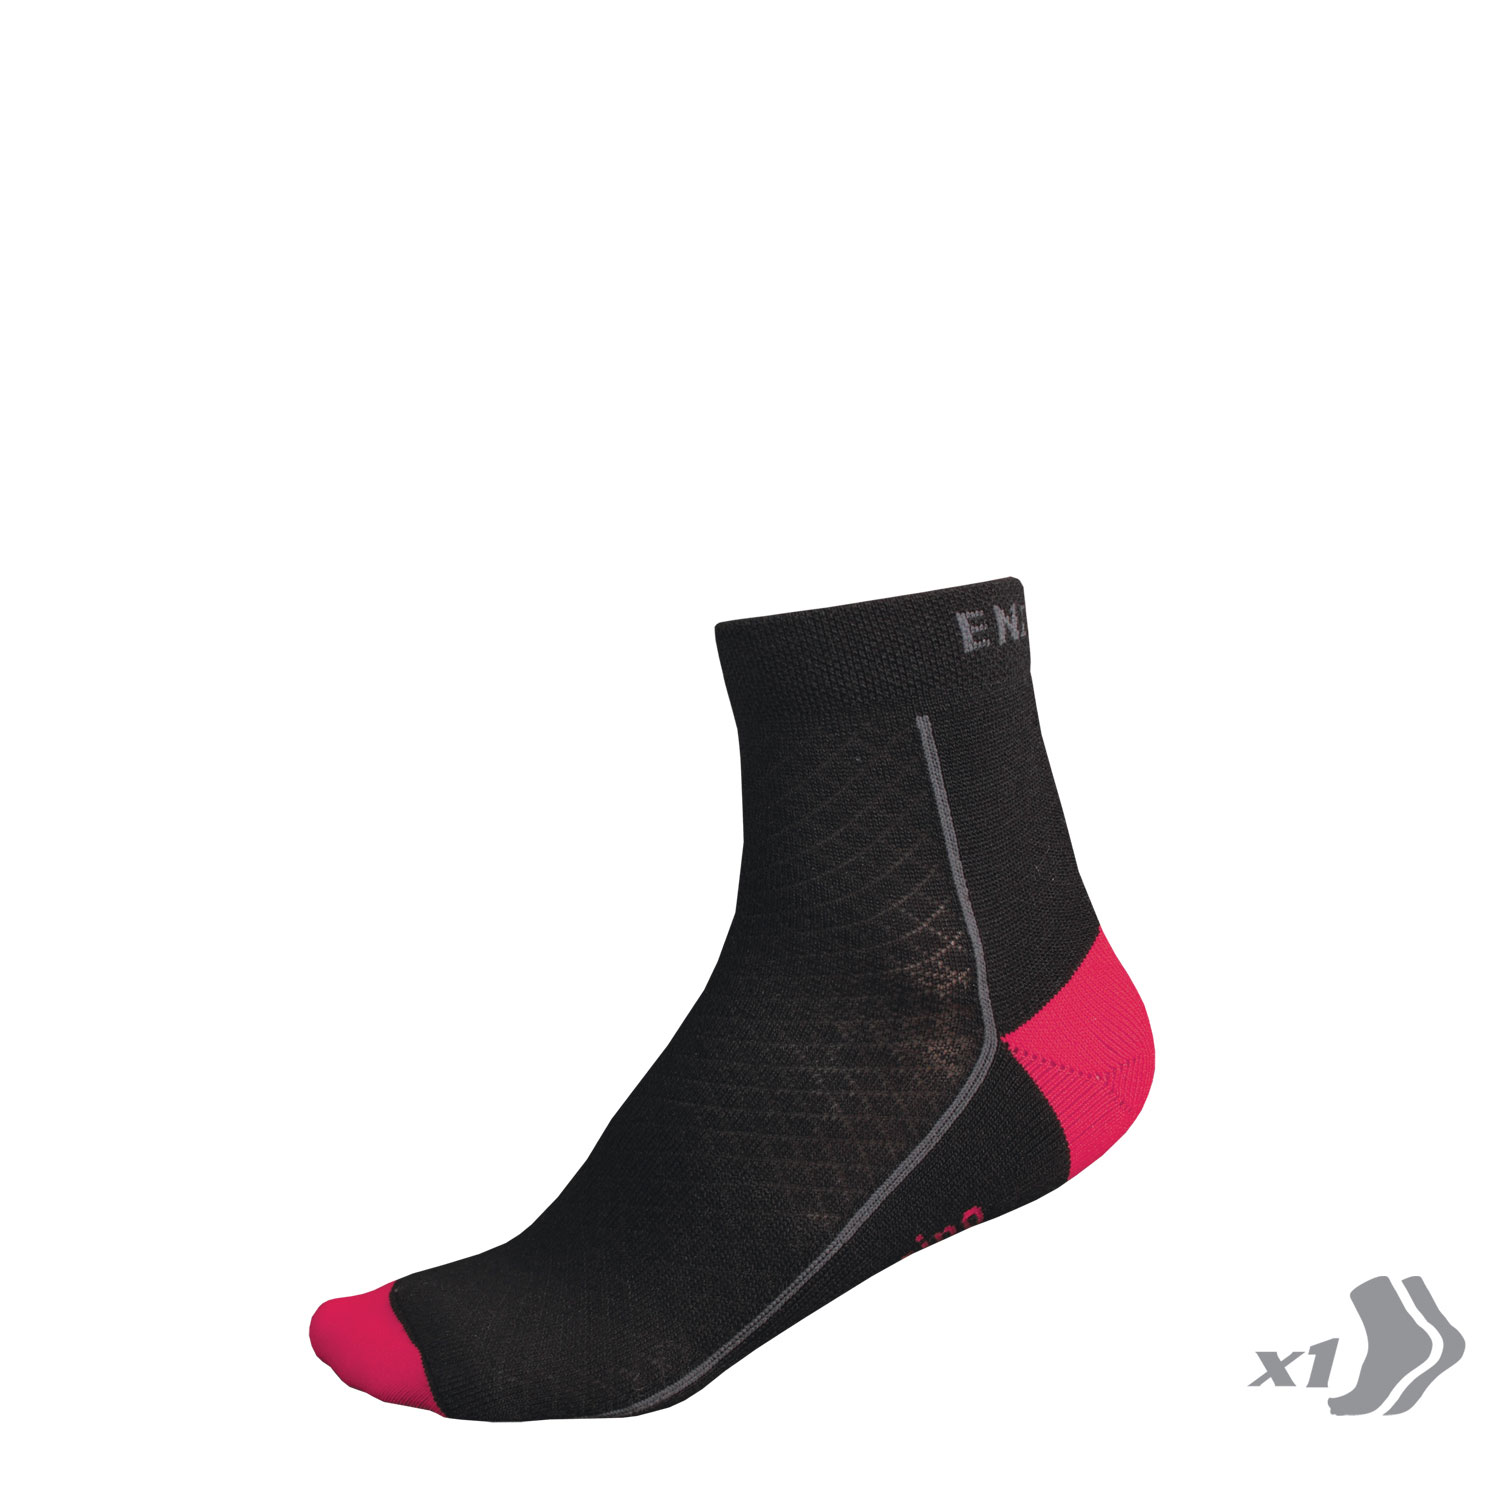 Wms BaaBaa Merino Winter Sock (Single) Pink